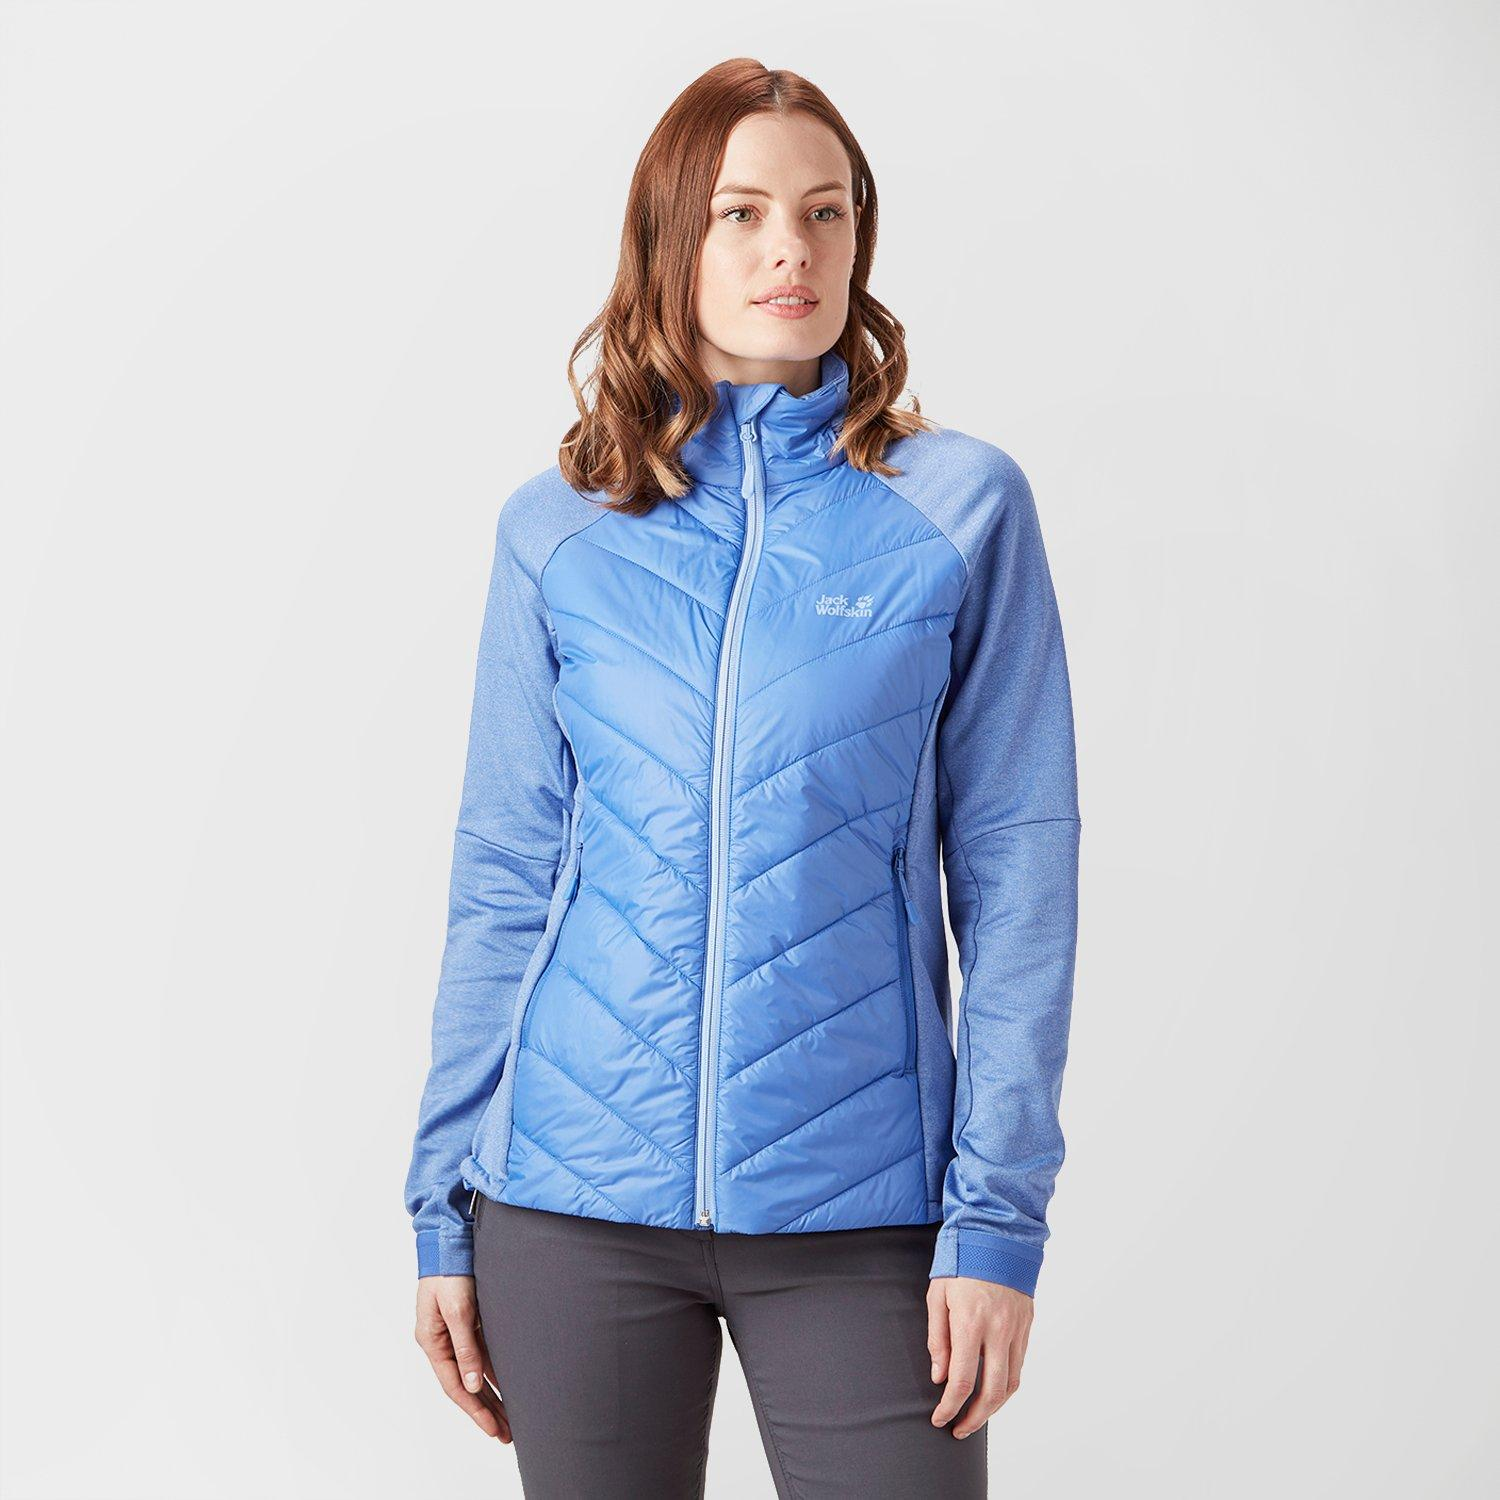 Berghaus 3 in 1 jacket go outdoors